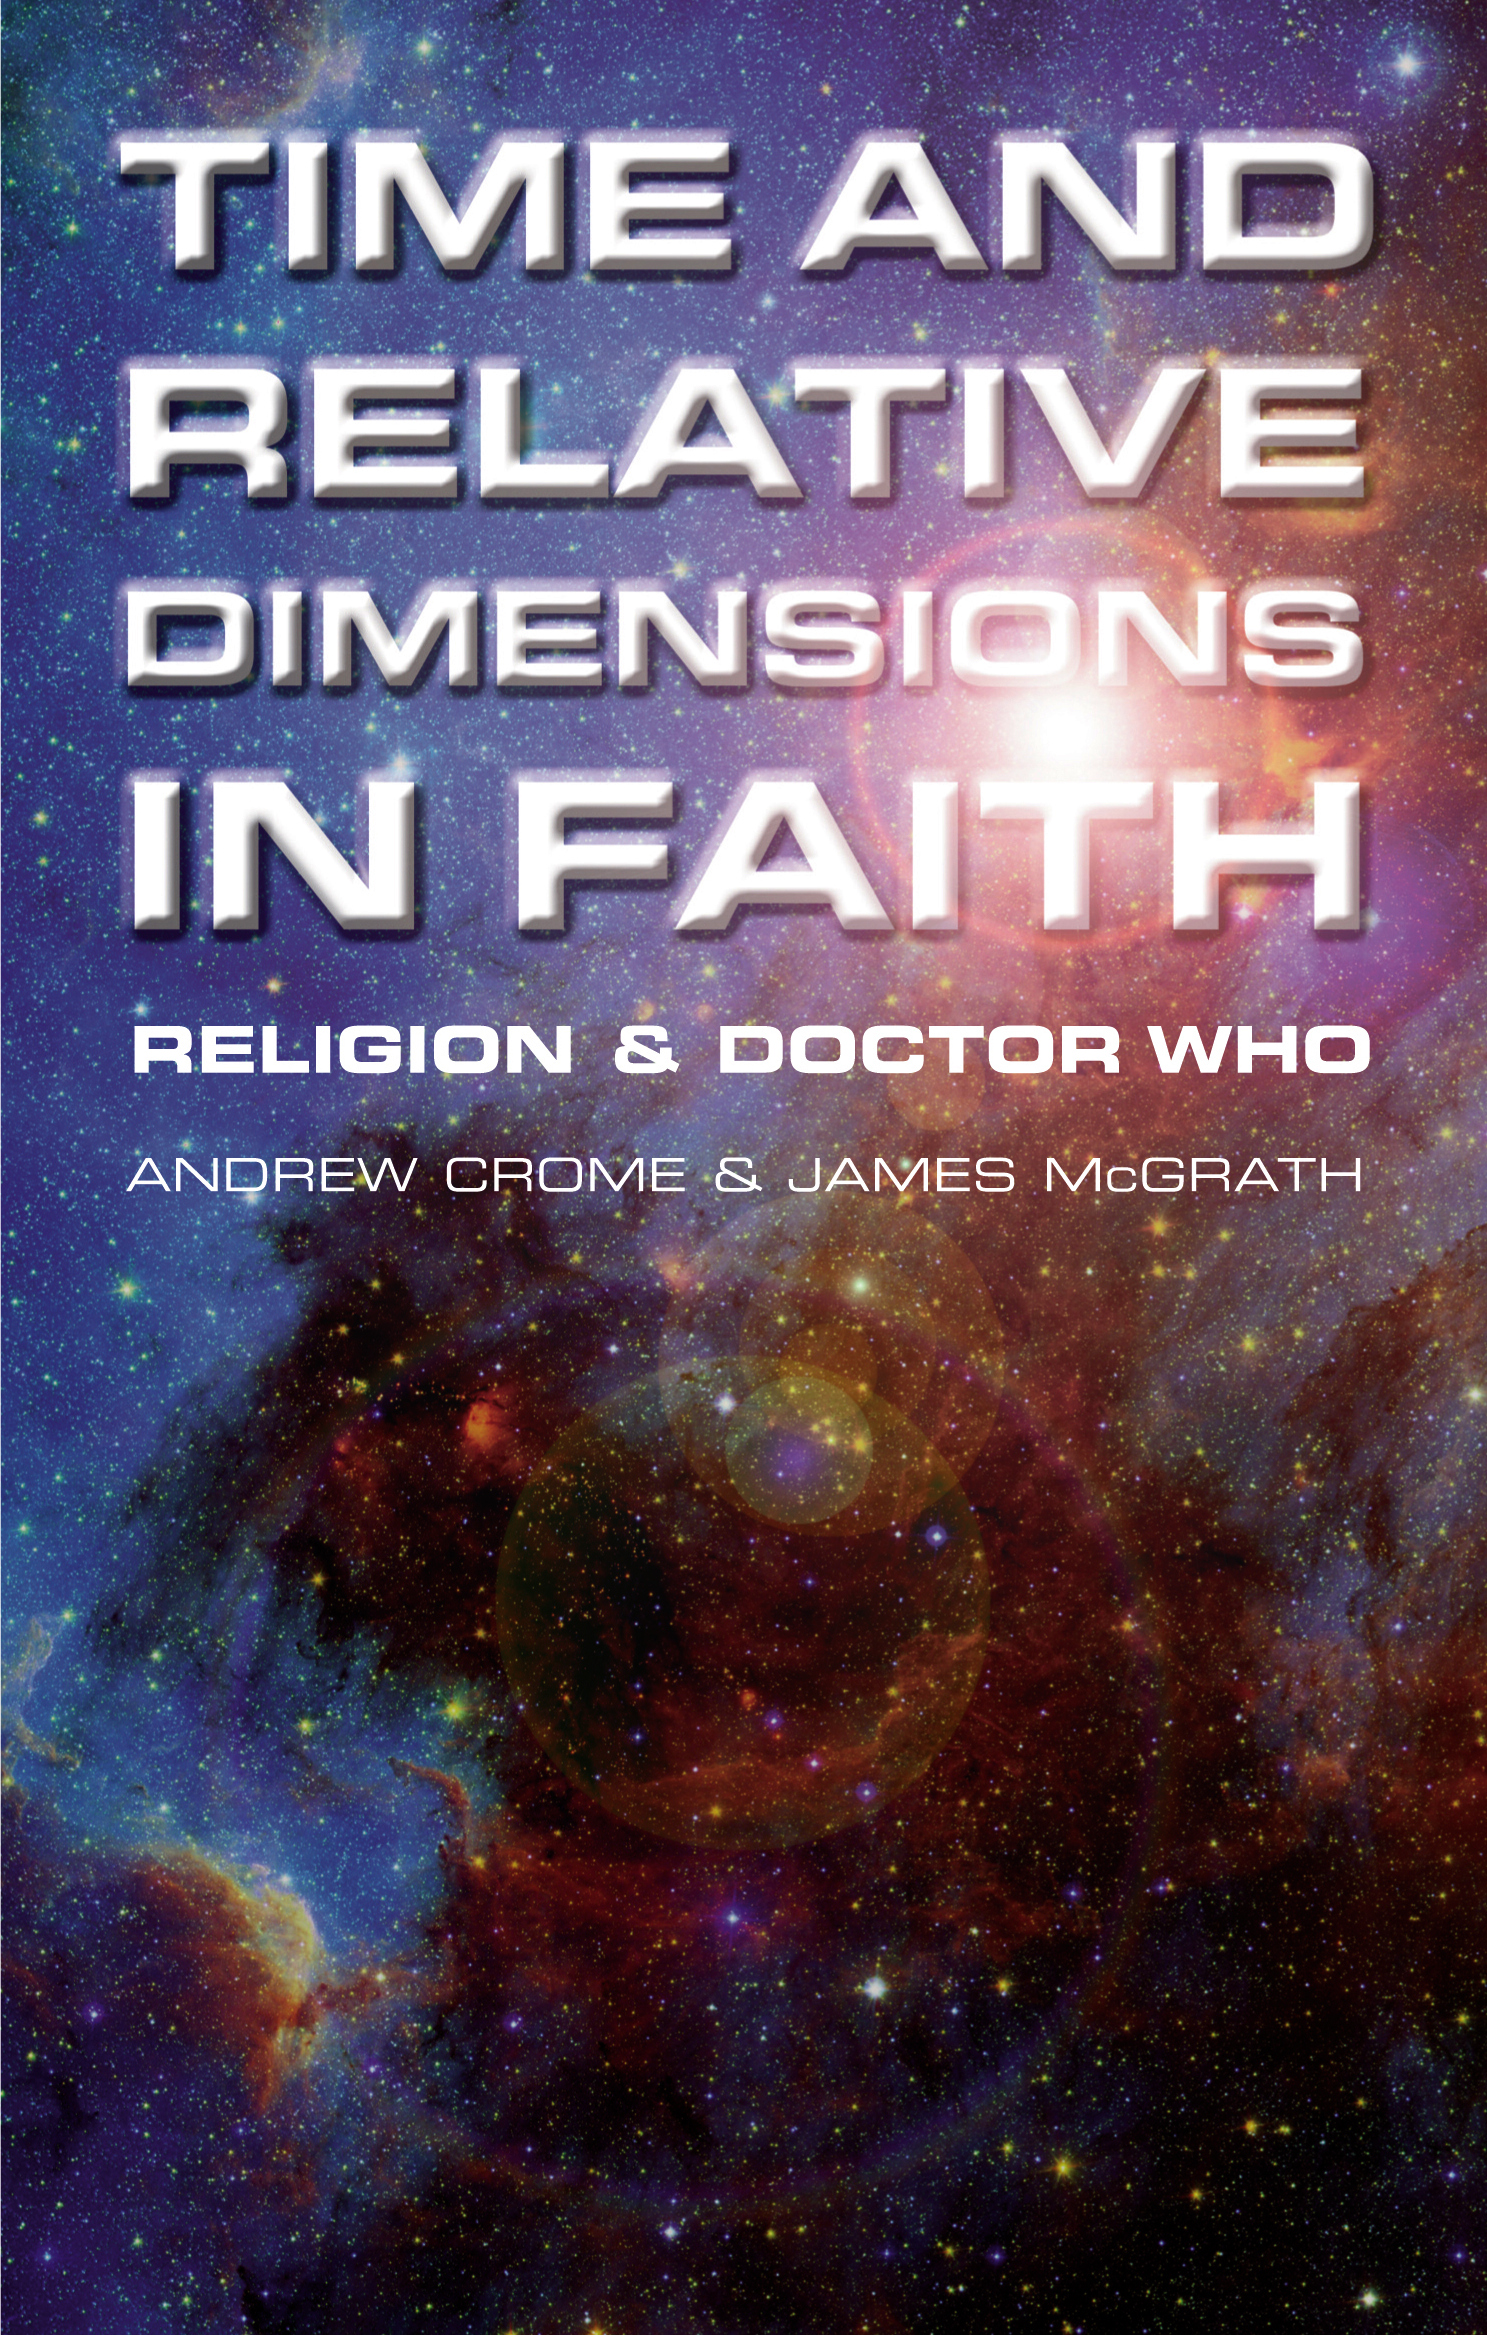 Time and Relative Dimensions in Faith (Credit: Darton, Longman and Todd Ltd)